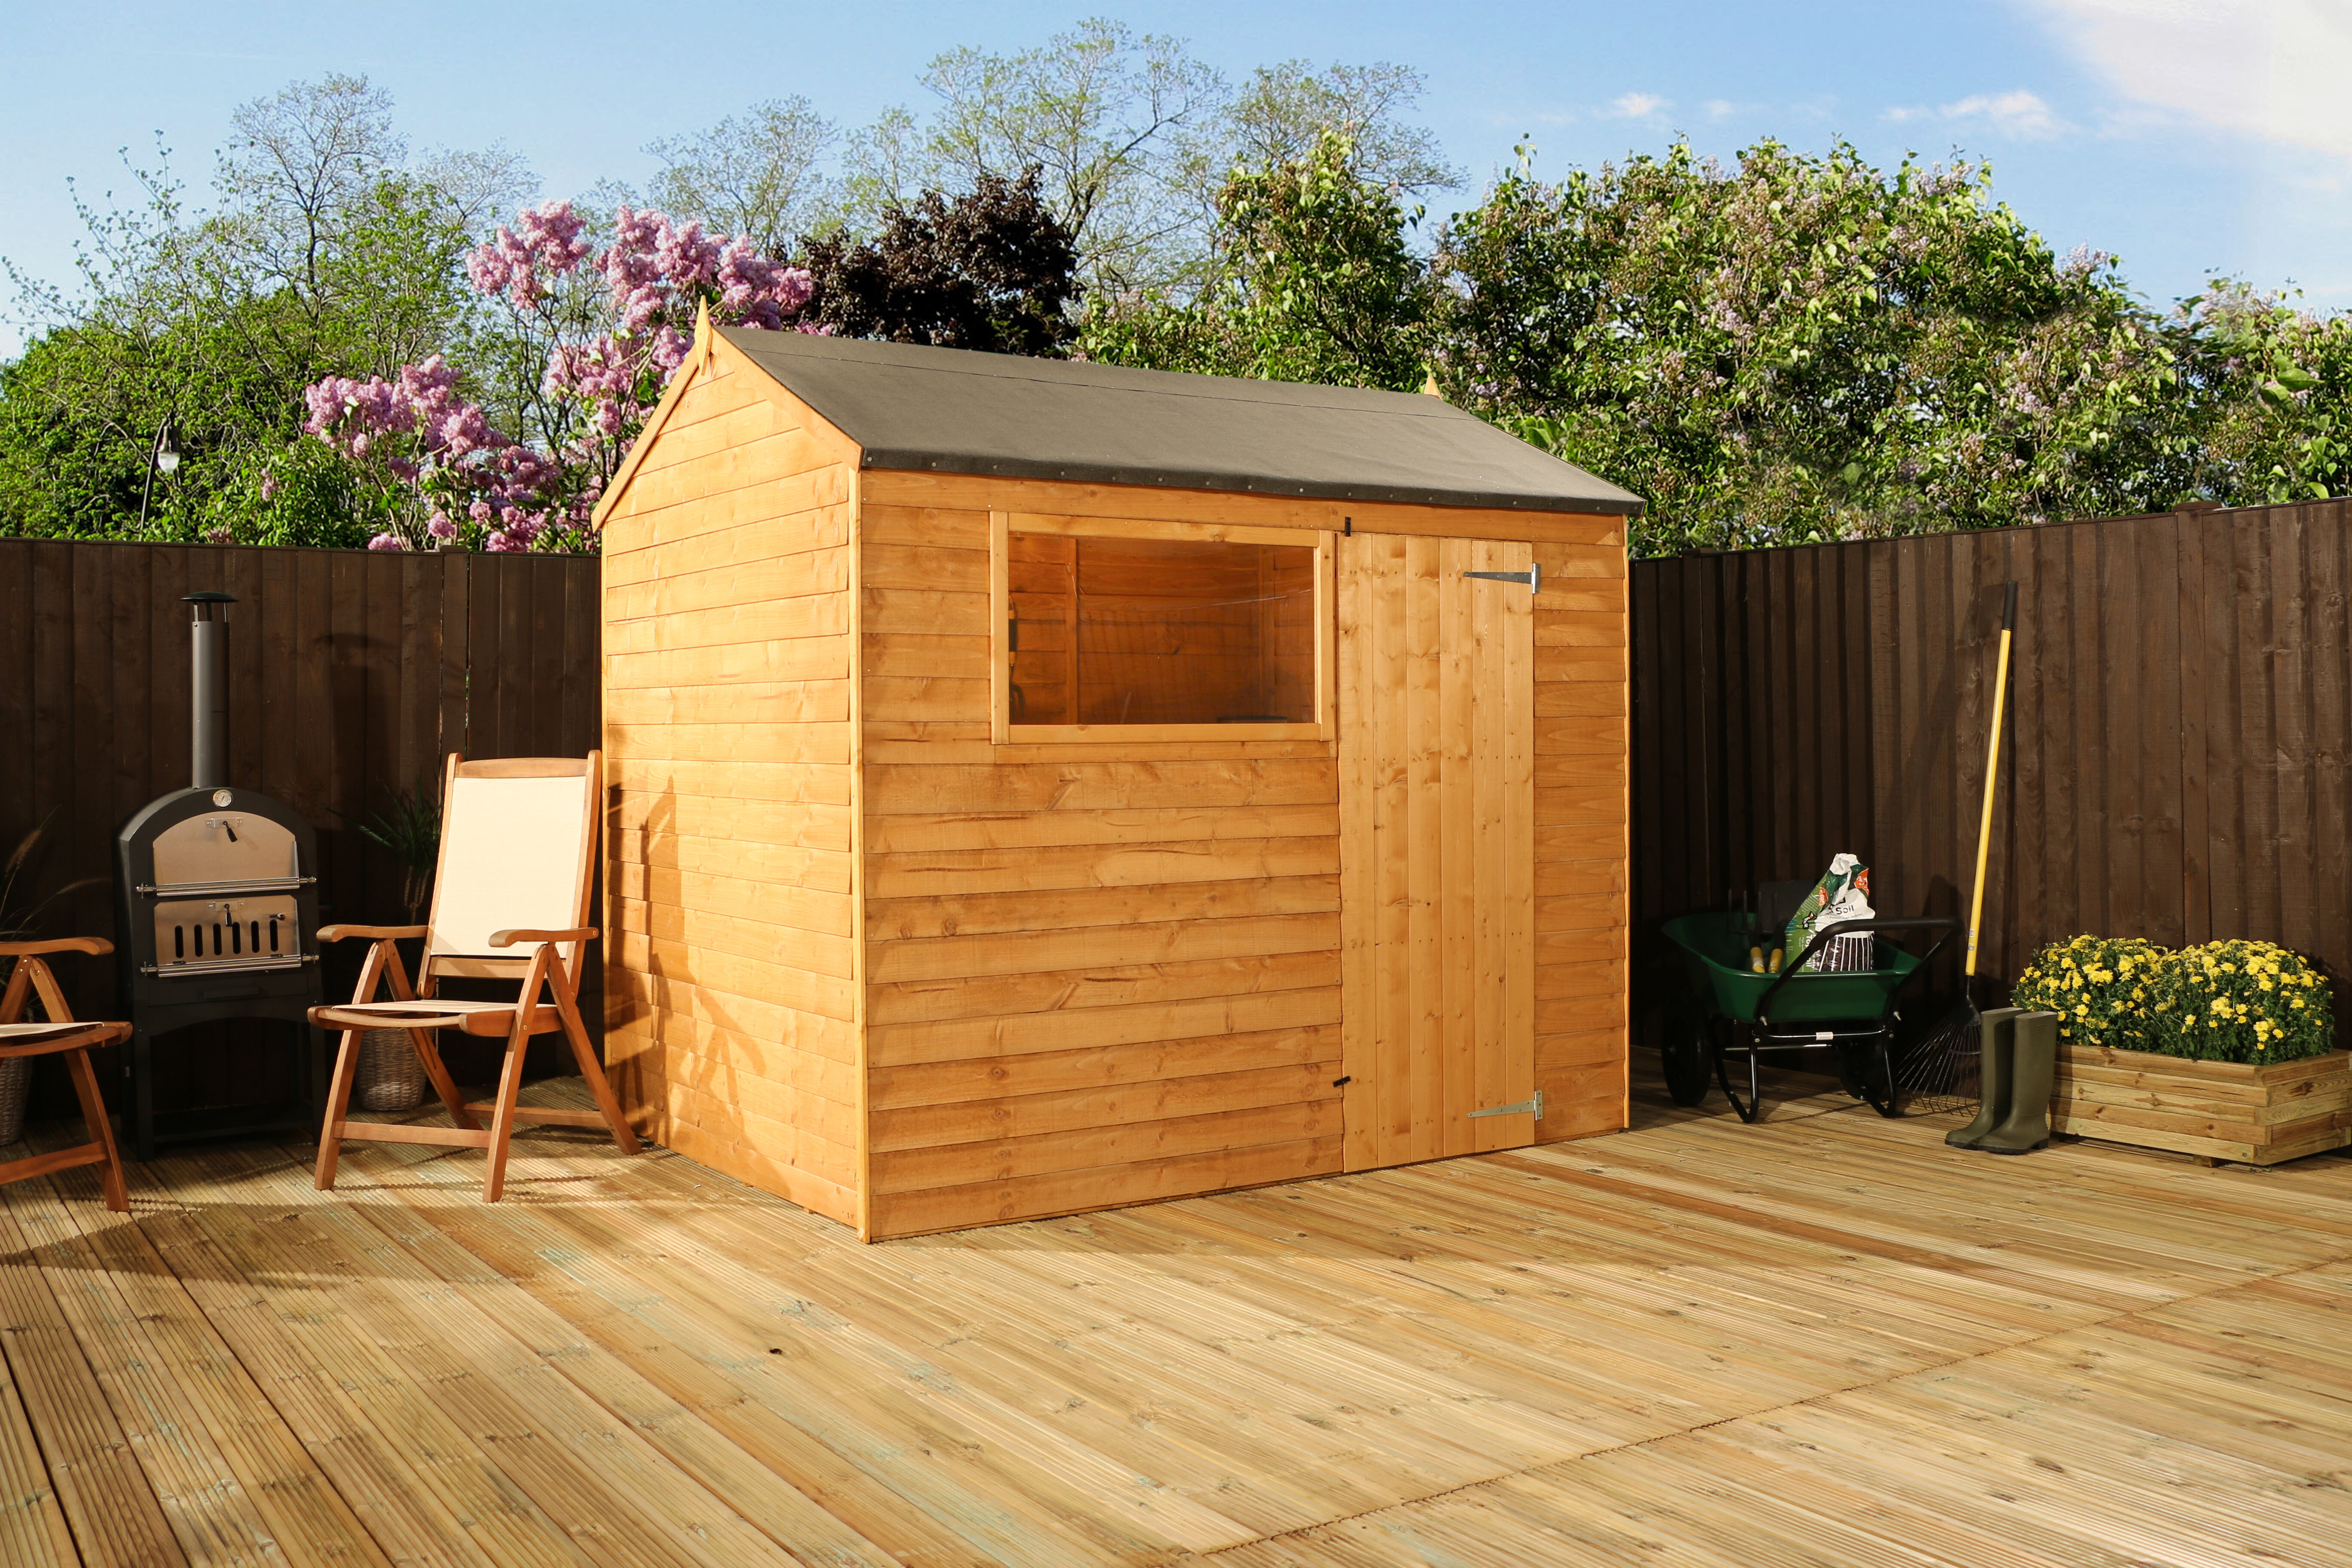 makes shed x storage saltbox kit easy an for outdoor project weekend diy walls panelized pin wood sheds tool